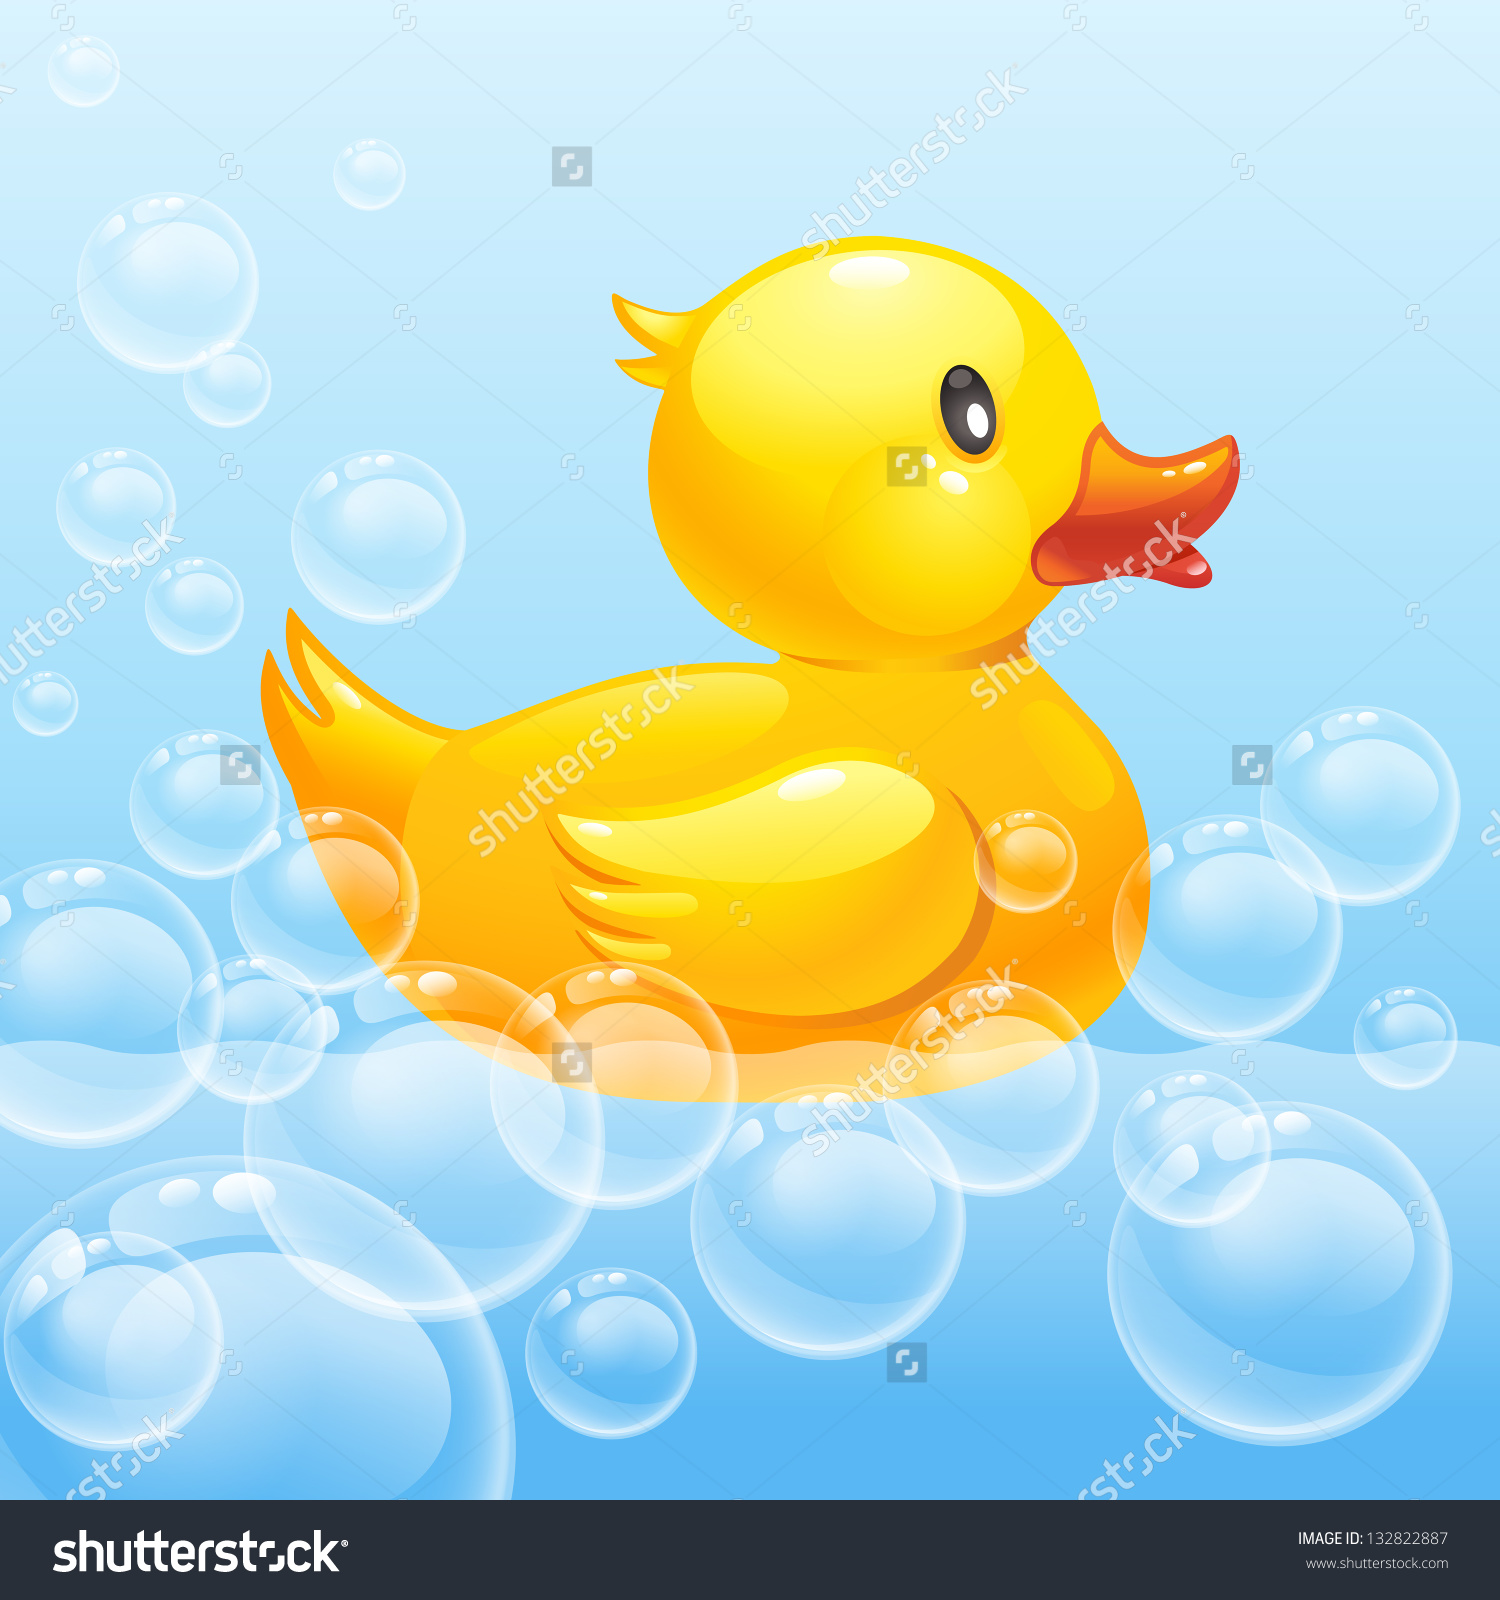 Rubber Duck Blue Water 10eps Stock Vector 132822887.